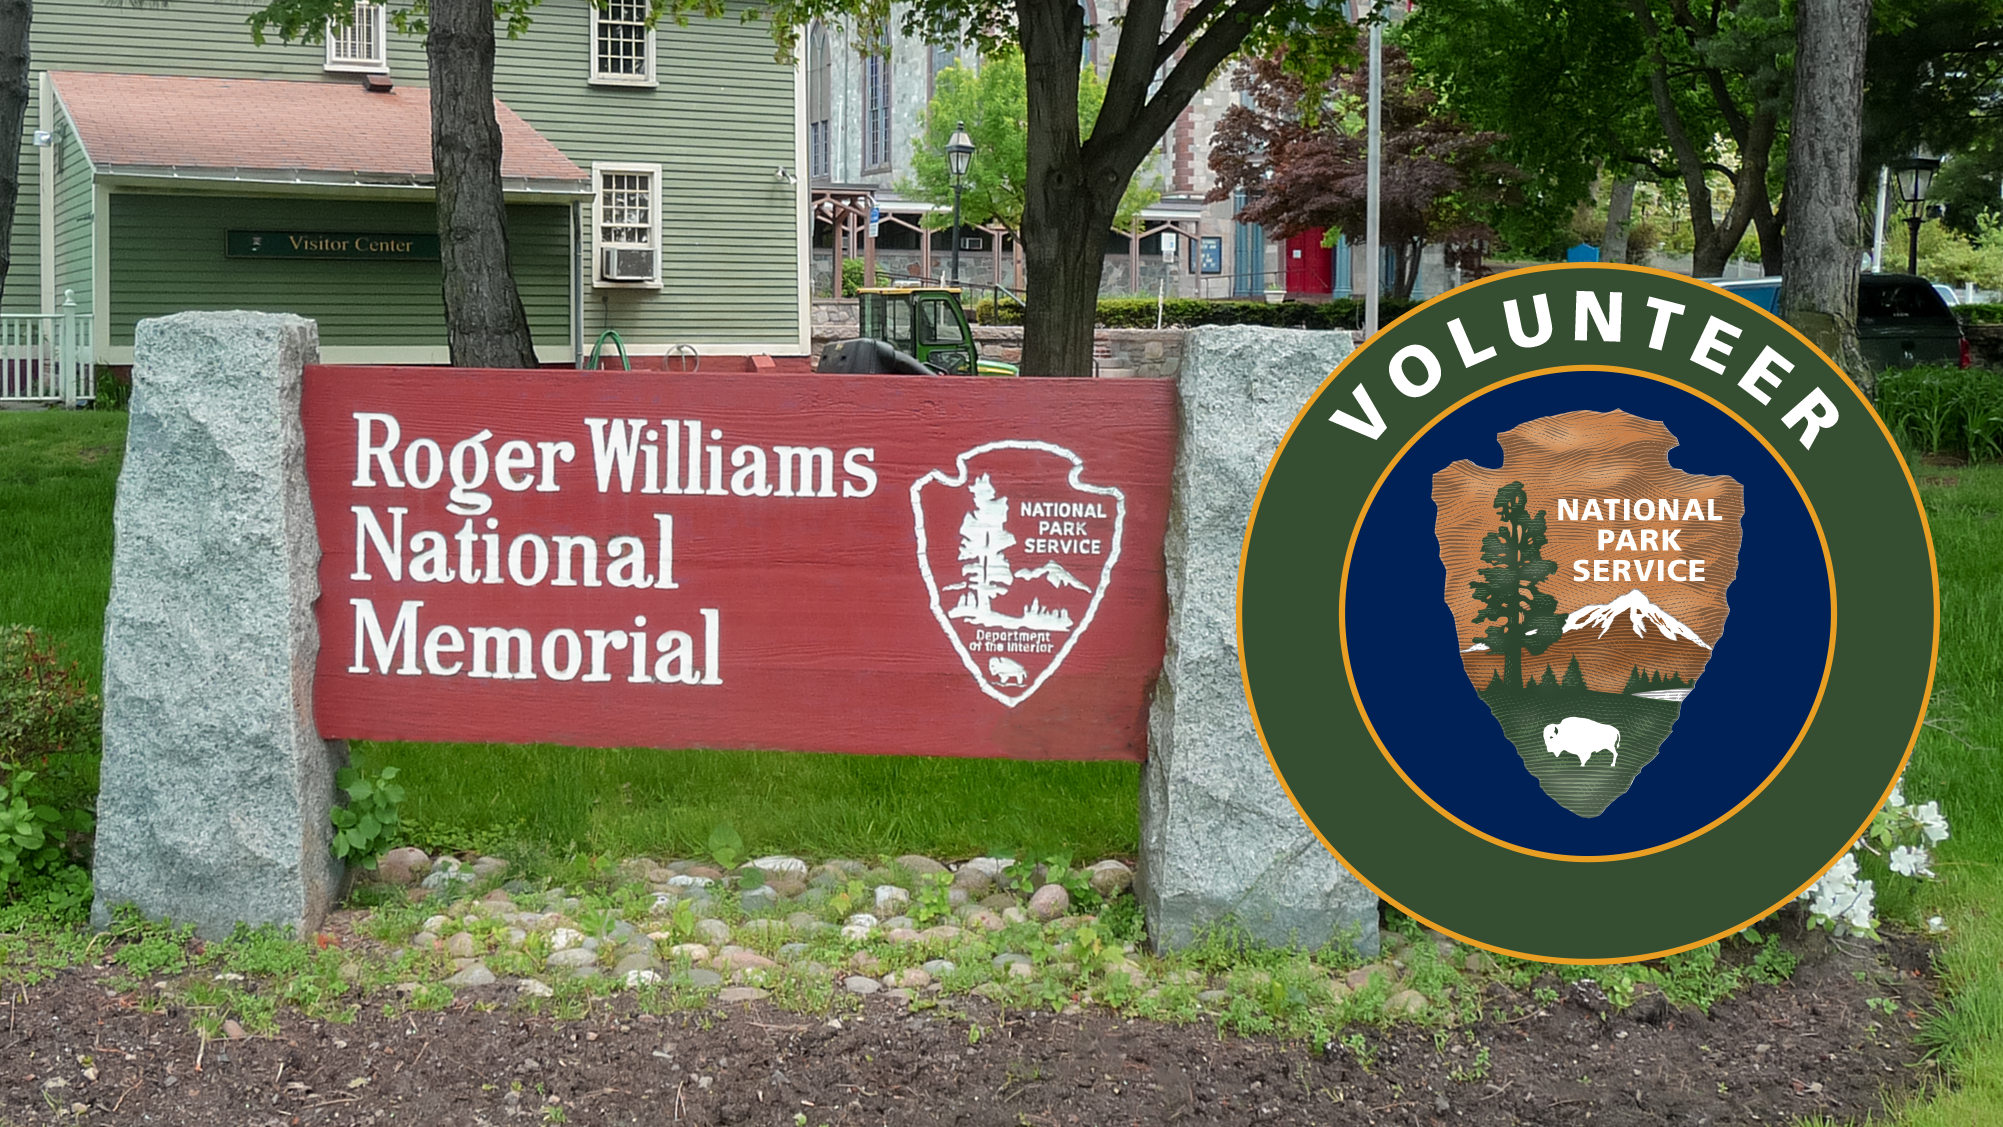 Image of Roger Williams welcome sign and volunteer logo.